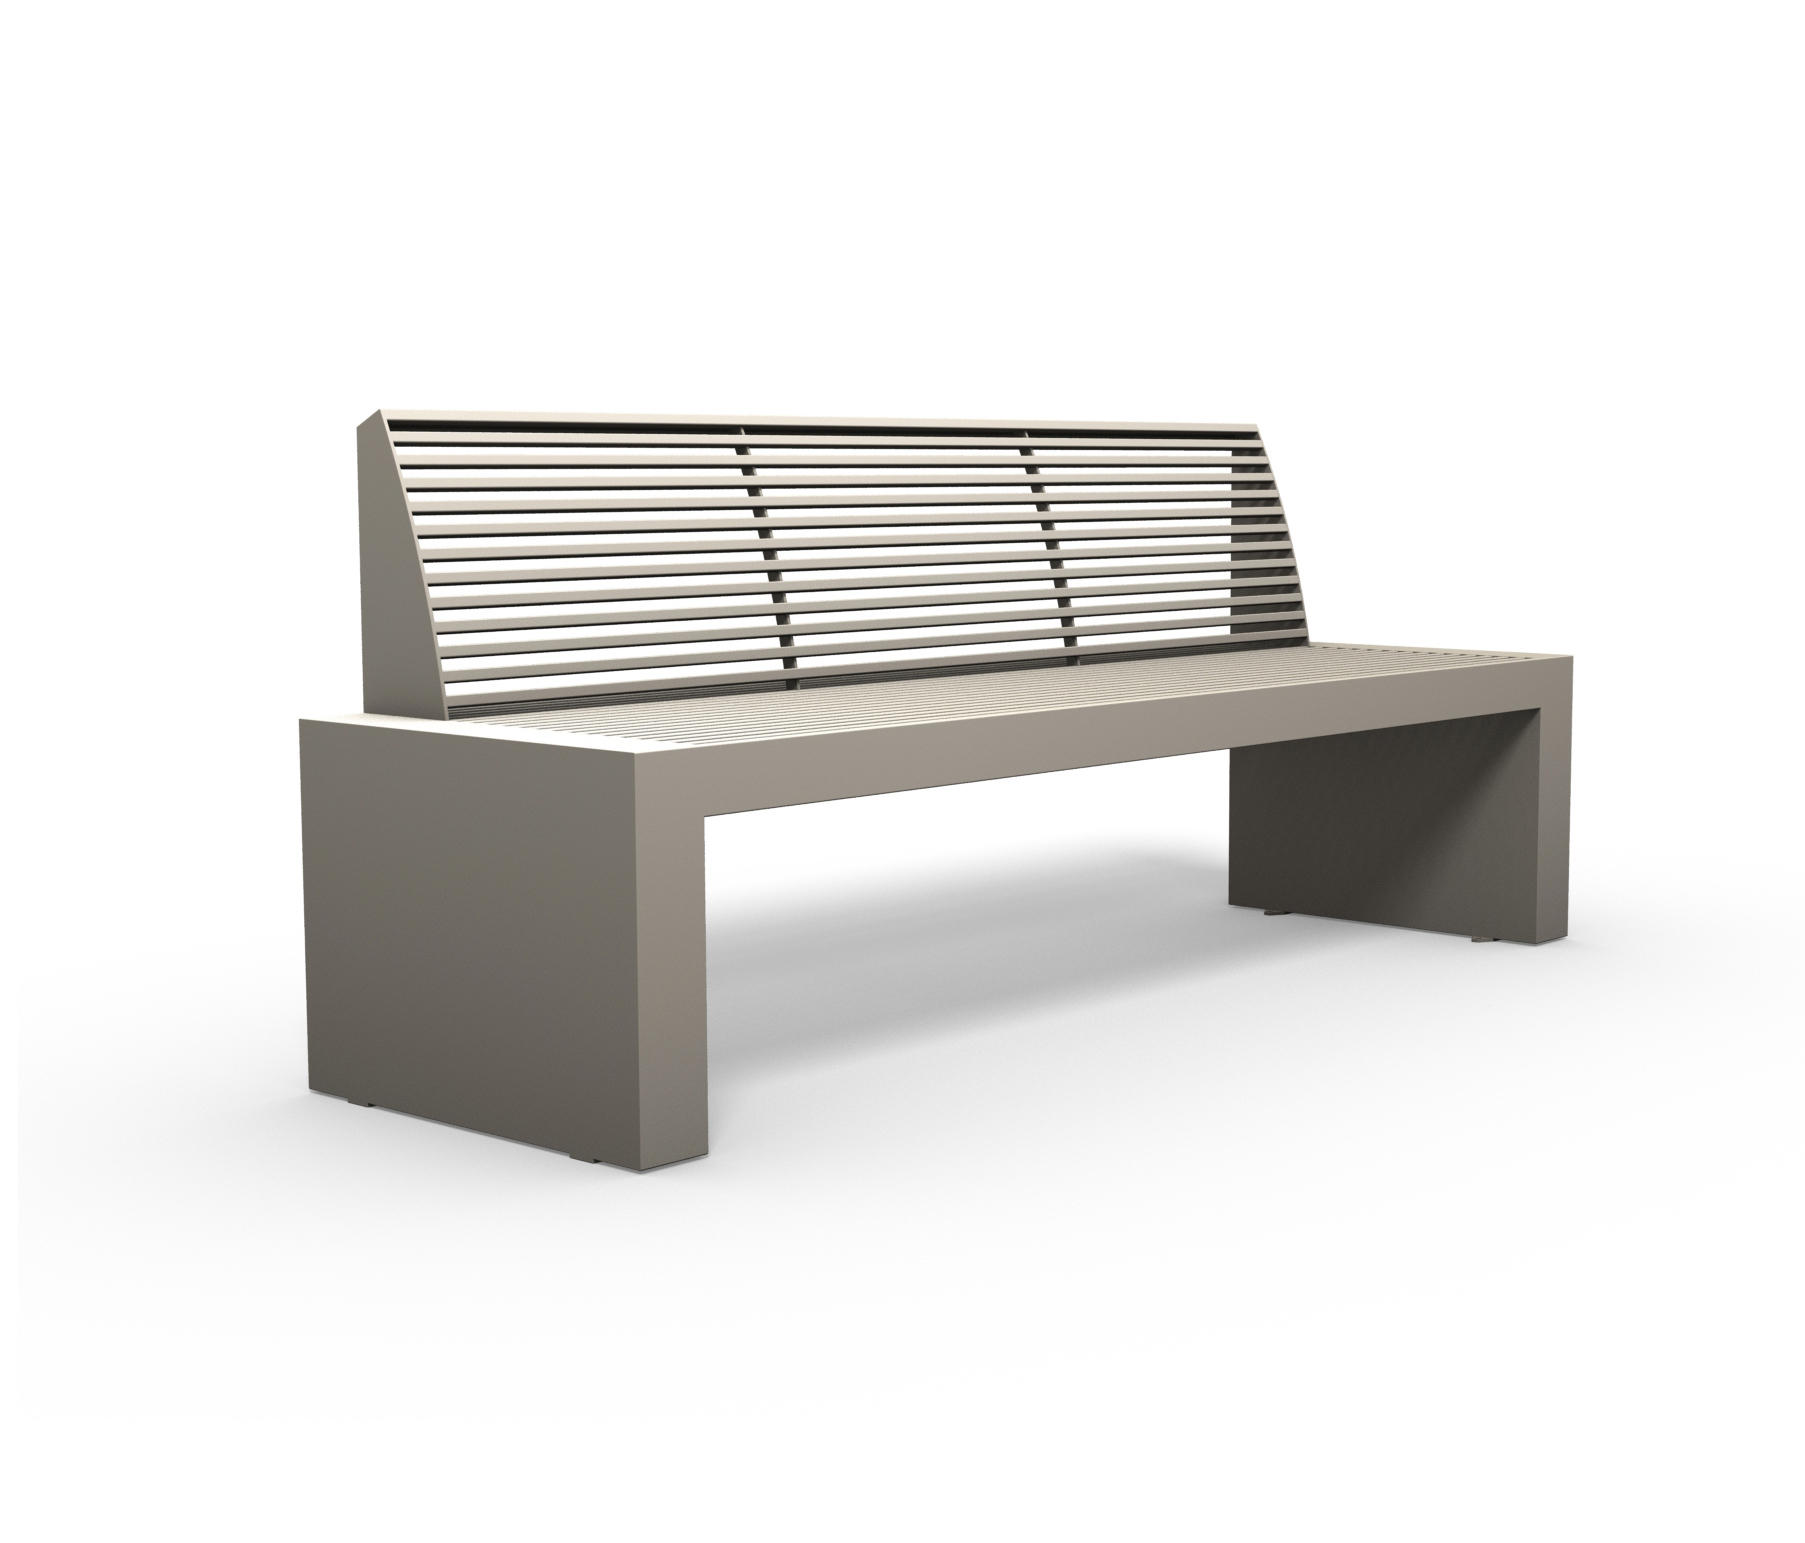 sicorum m 700 bench bancs publics de benkert baenke architonic. Black Bedroom Furniture Sets. Home Design Ideas